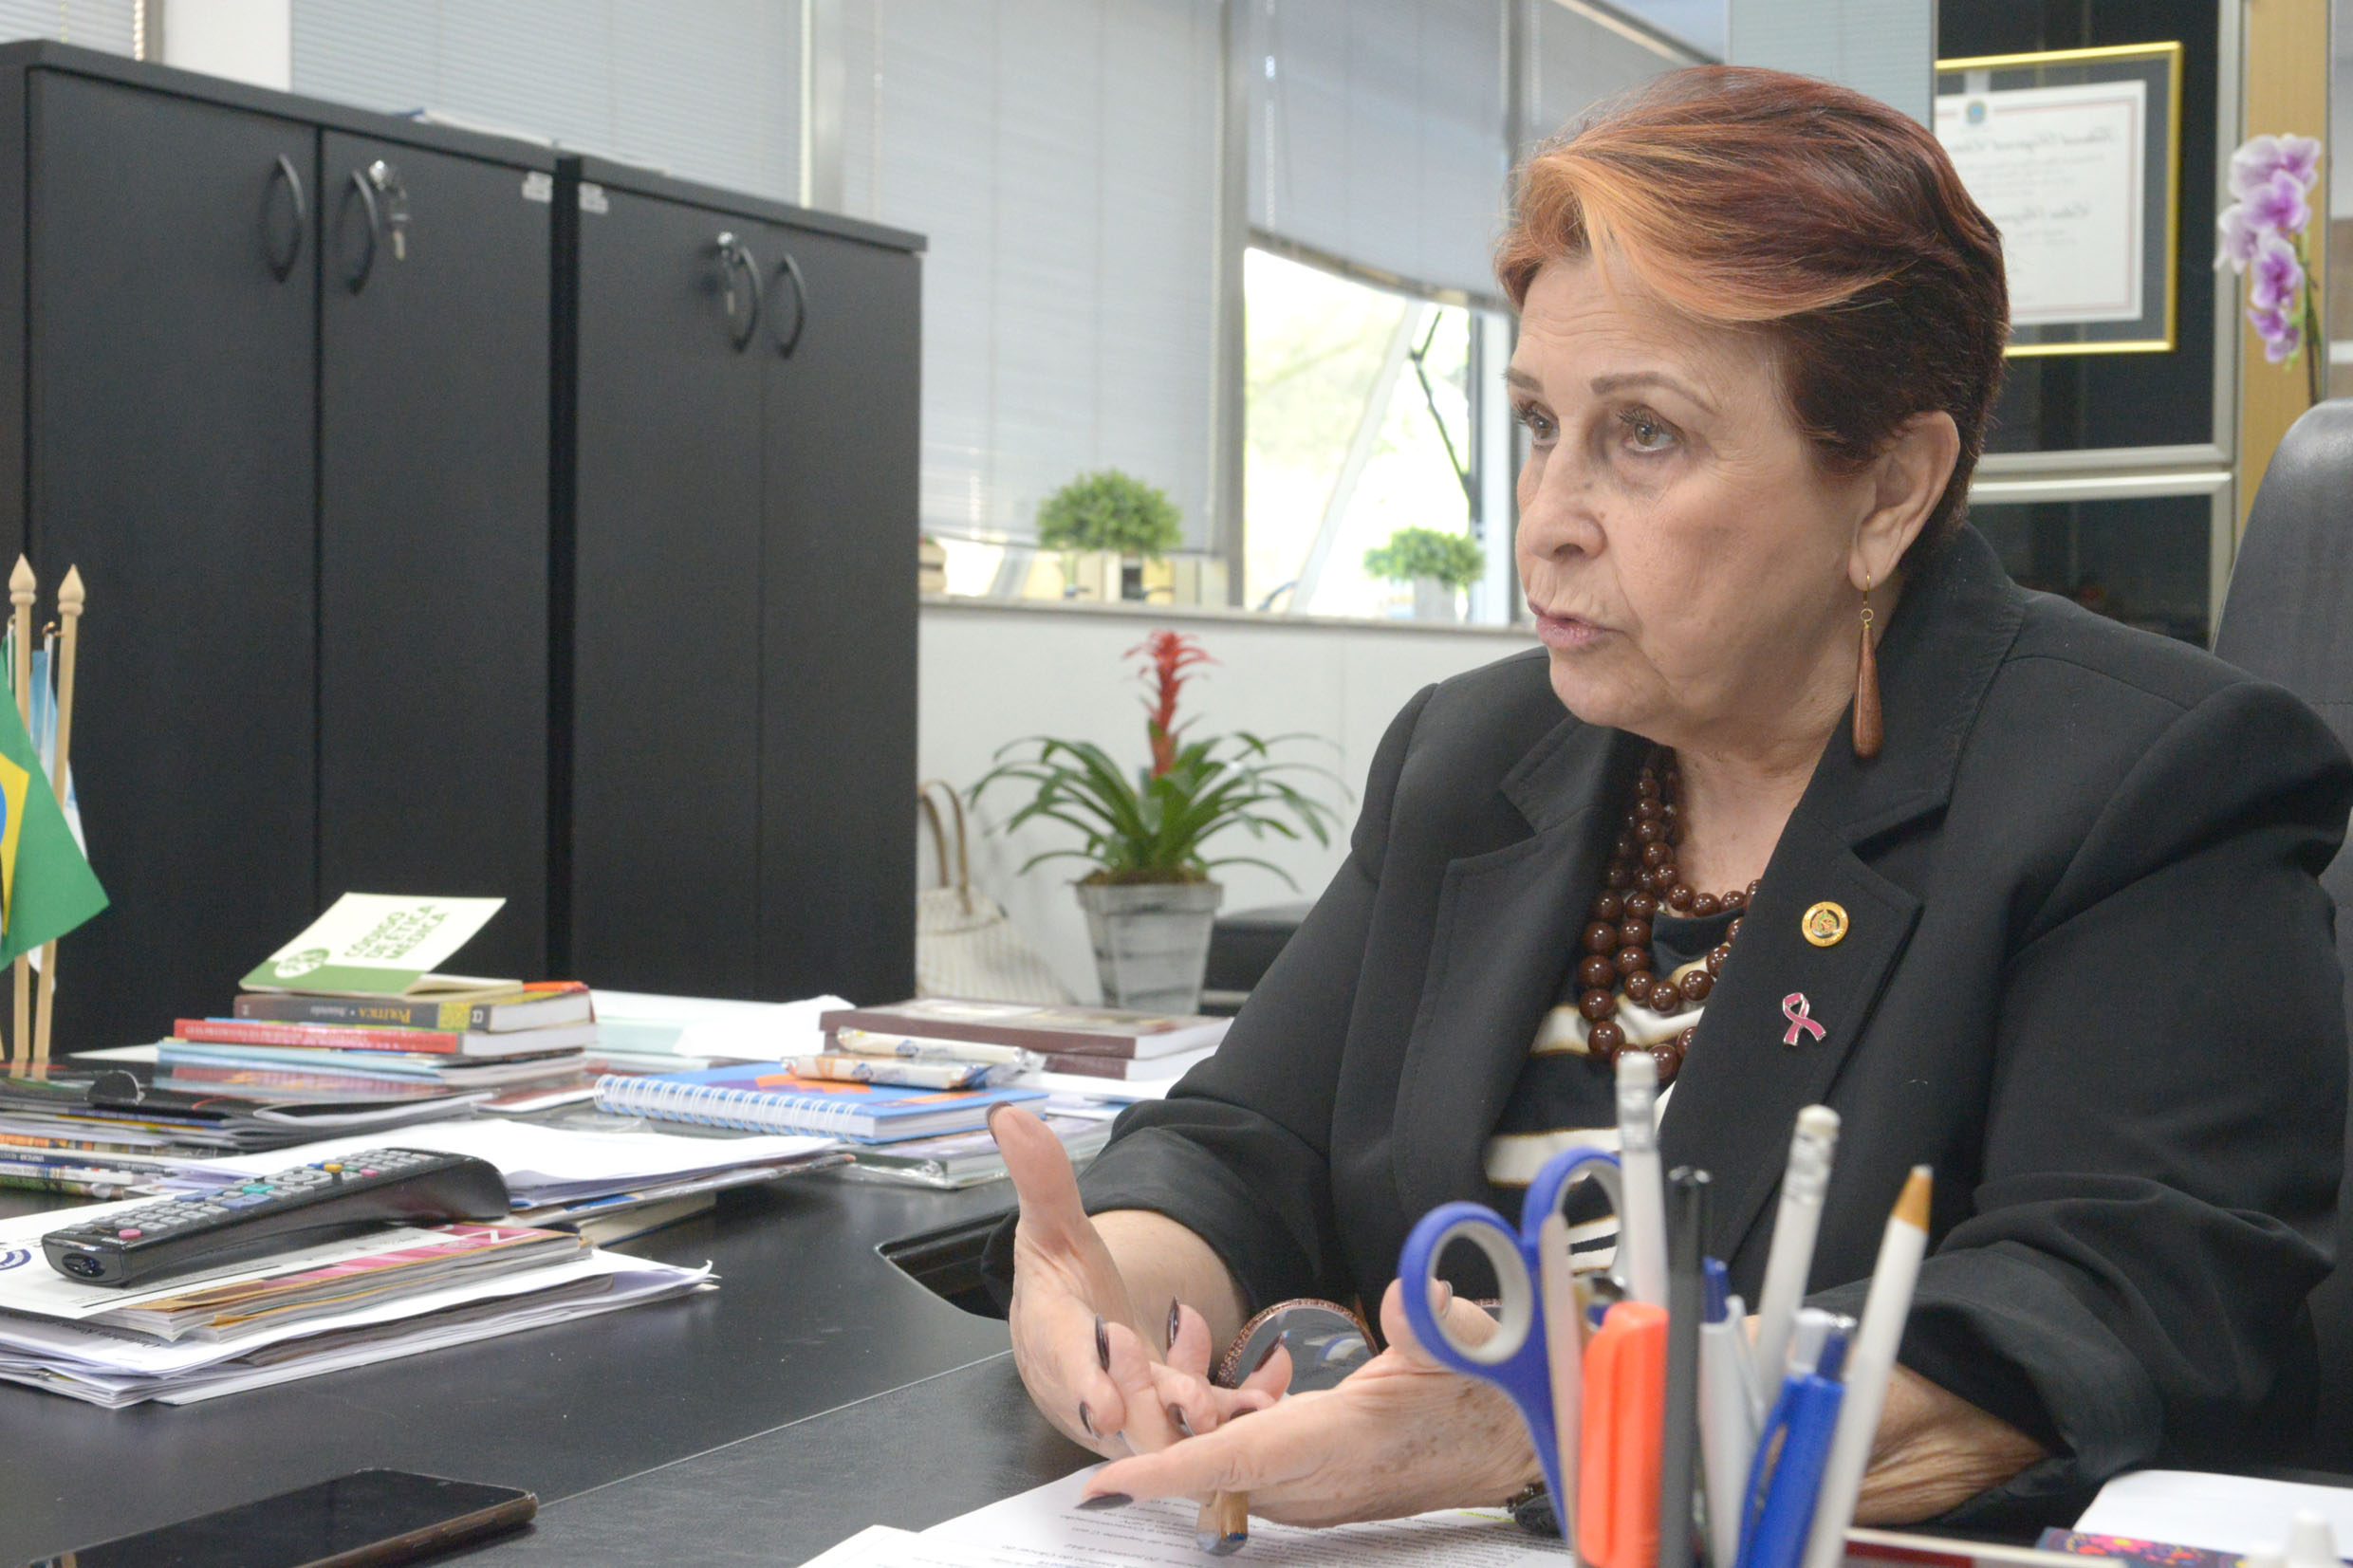 Edna Macedo<a style='float:right' href='https://www3.al.sp.gov.br/repositorio/noticia/N-10-2019/fg241646.jpg' target=_blank><img src='/_img/material-file-download-white.png' width='14px' alt='Clique para baixar a imagem'></a>